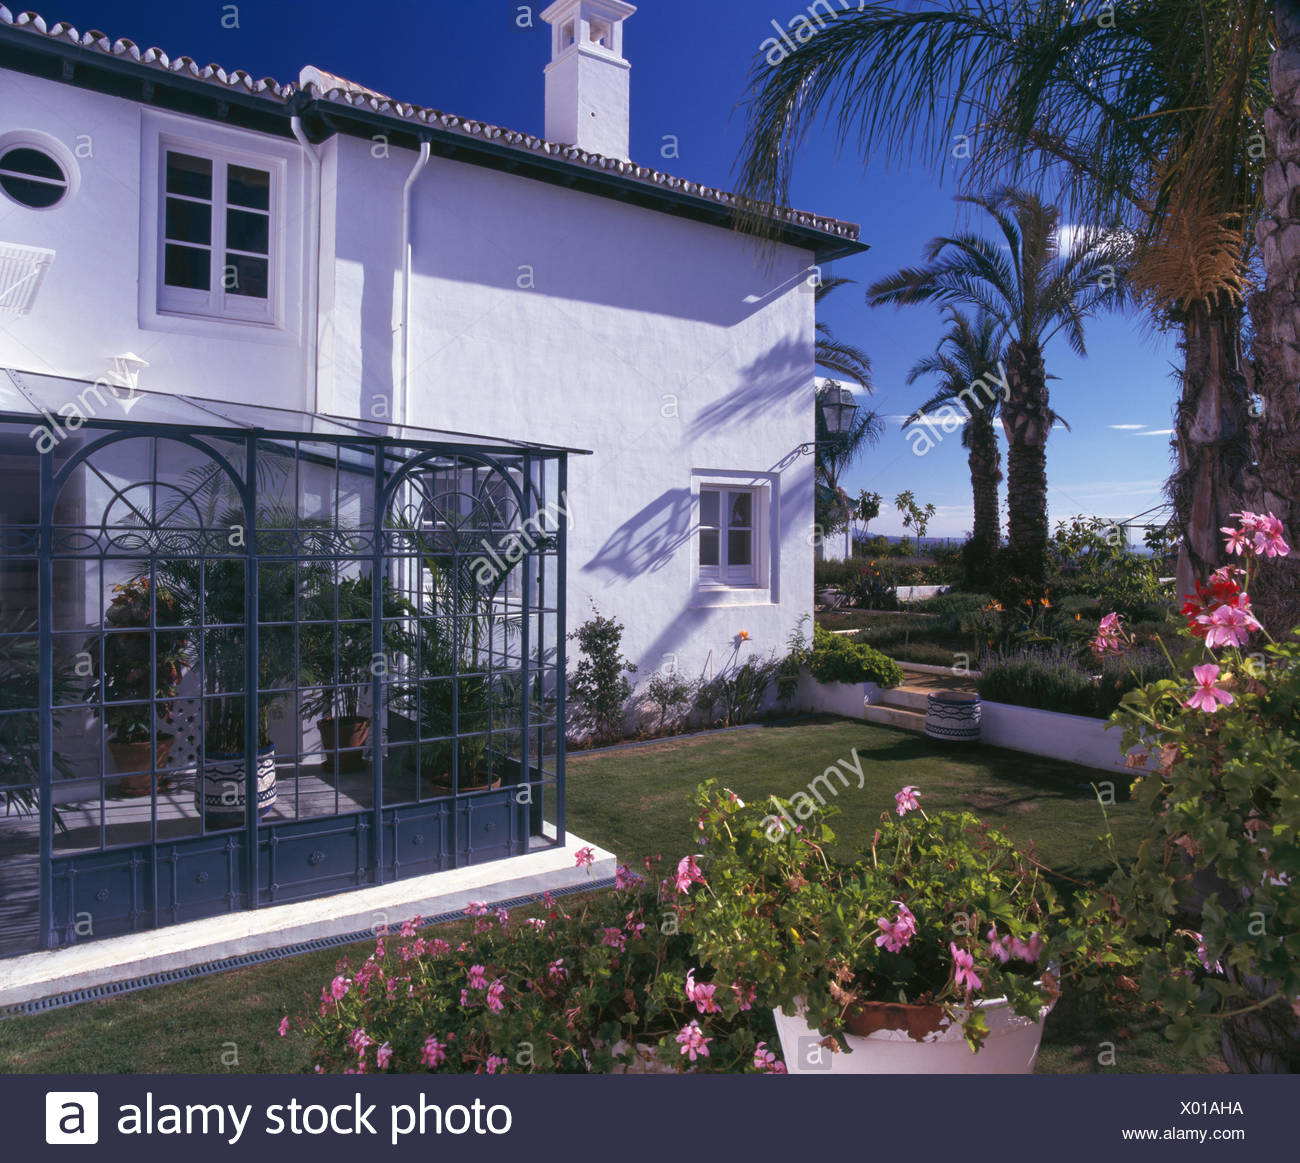 exteriors traditional conservatories stockfotos exteriors traditional conservatories bilder. Black Bedroom Furniture Sets. Home Design Ideas